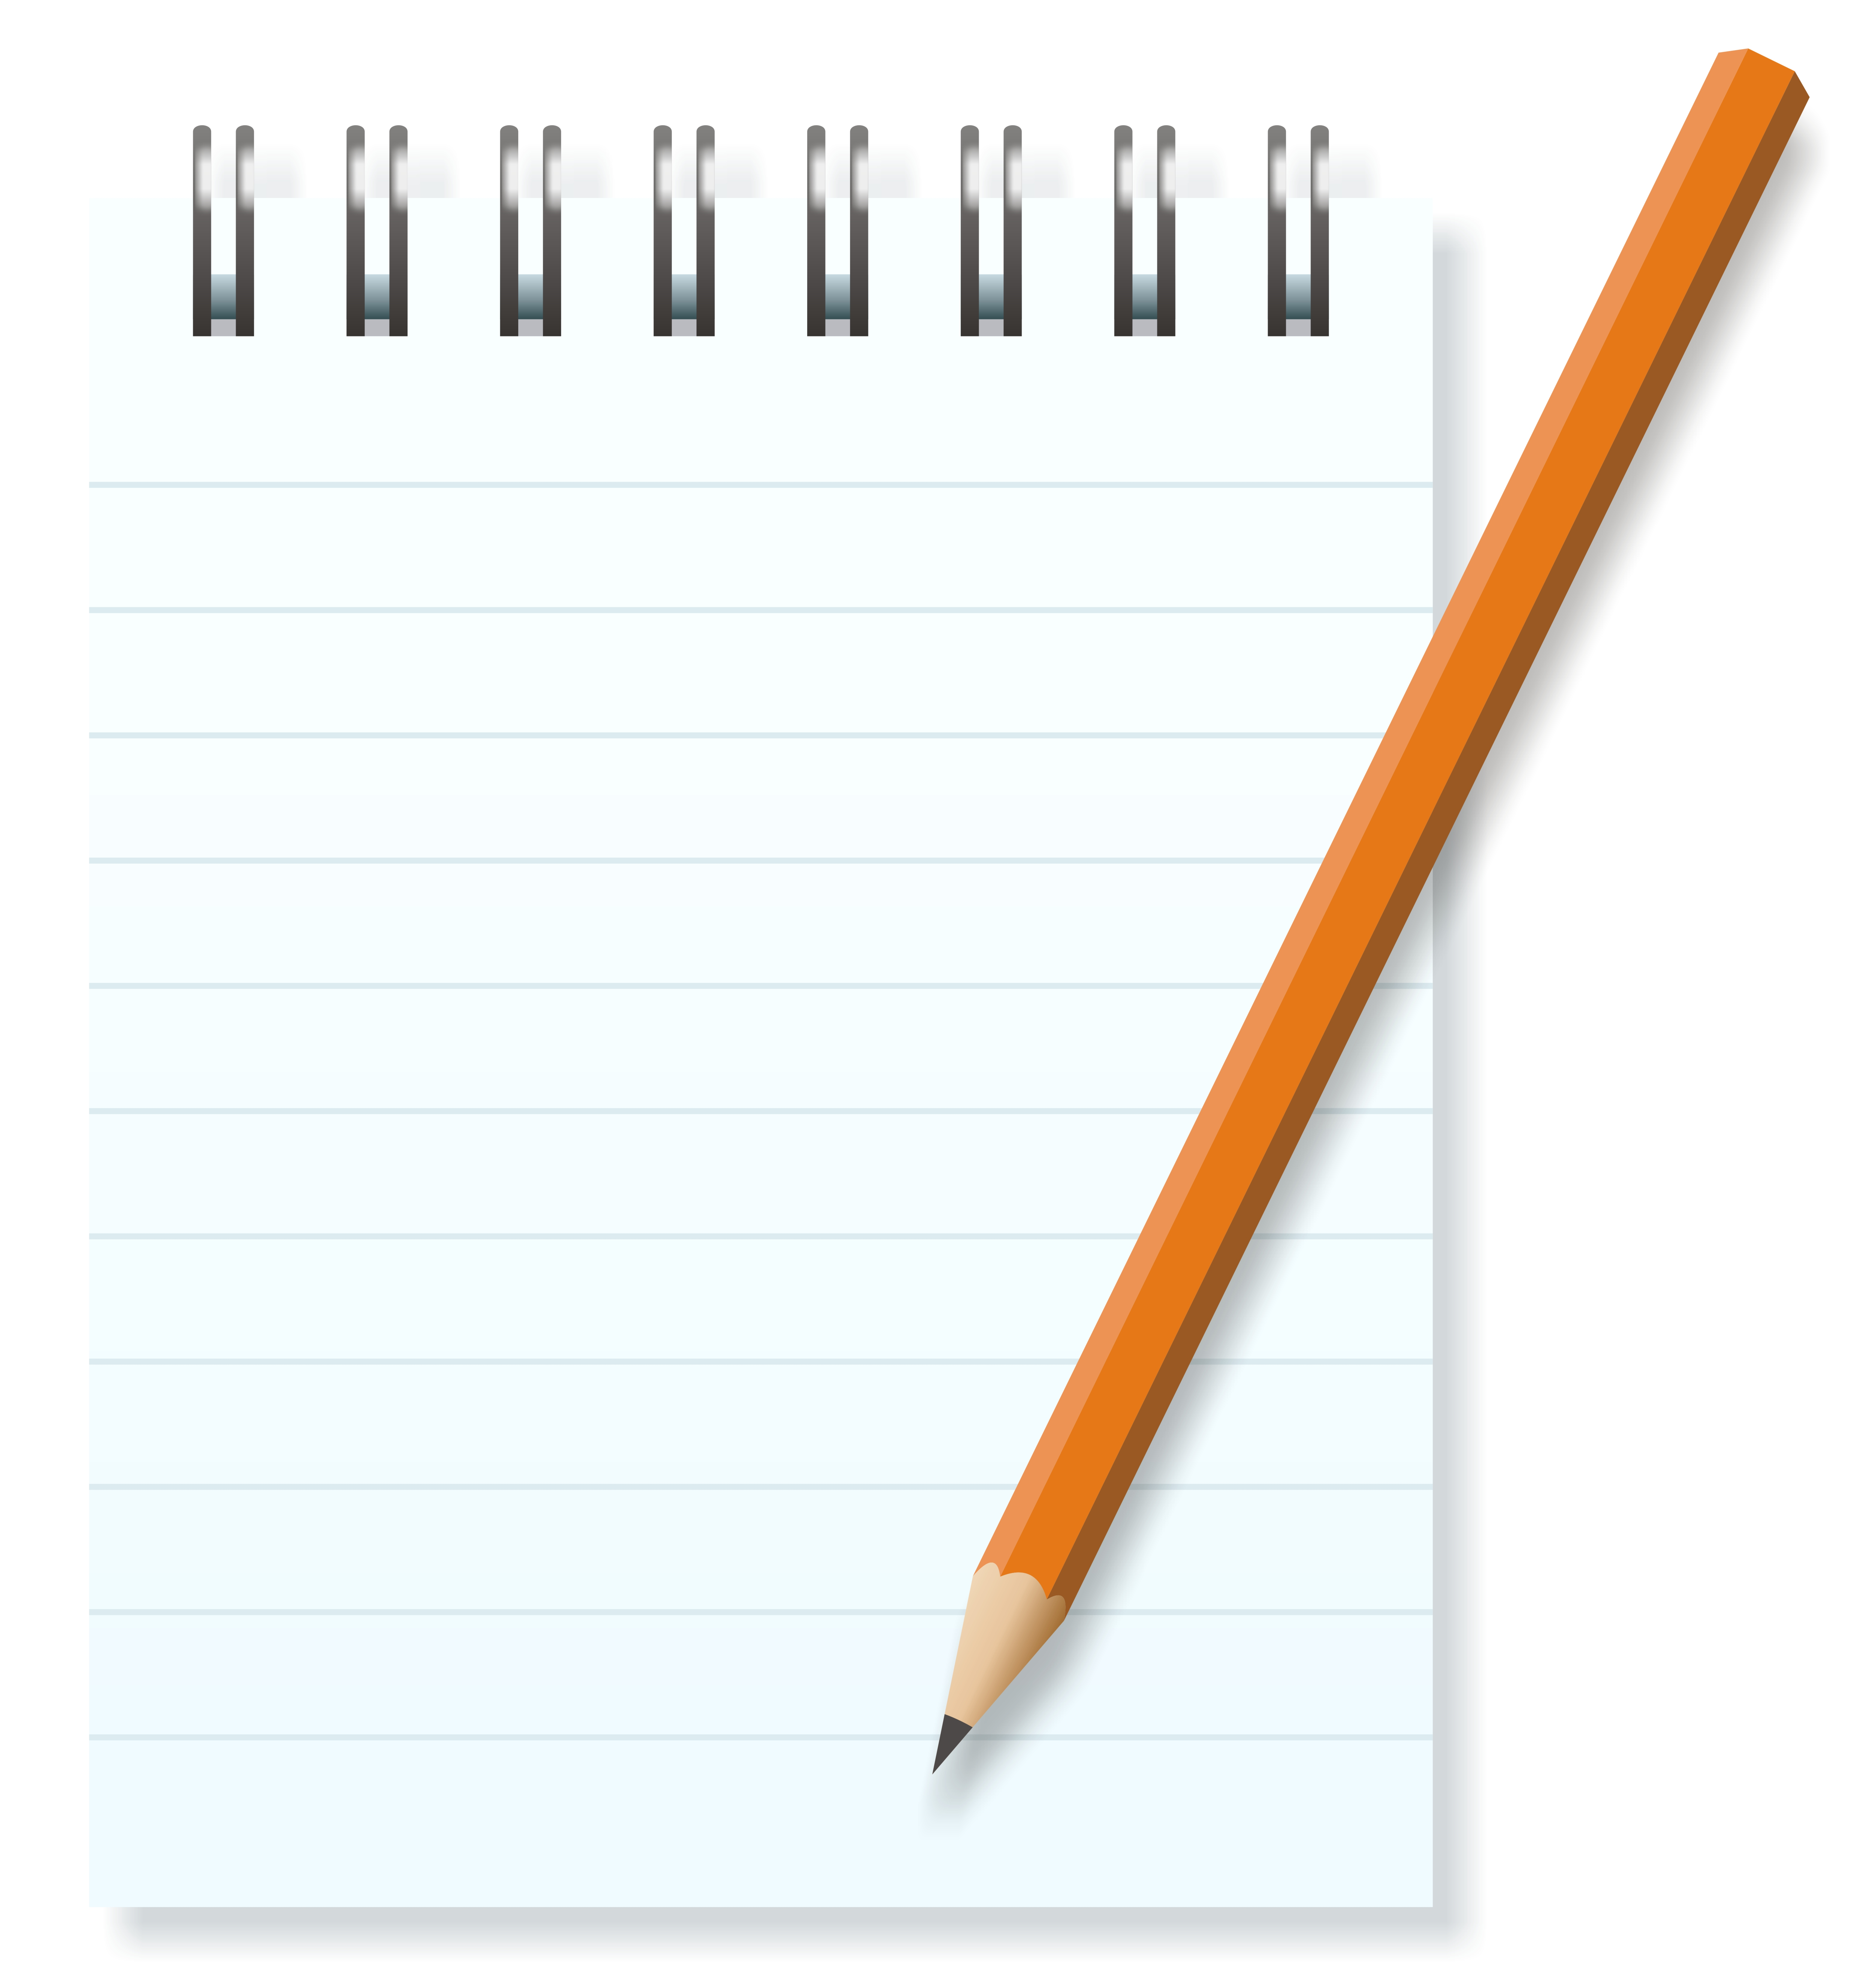 Notepad clipart writing pad. Free small cliparts download